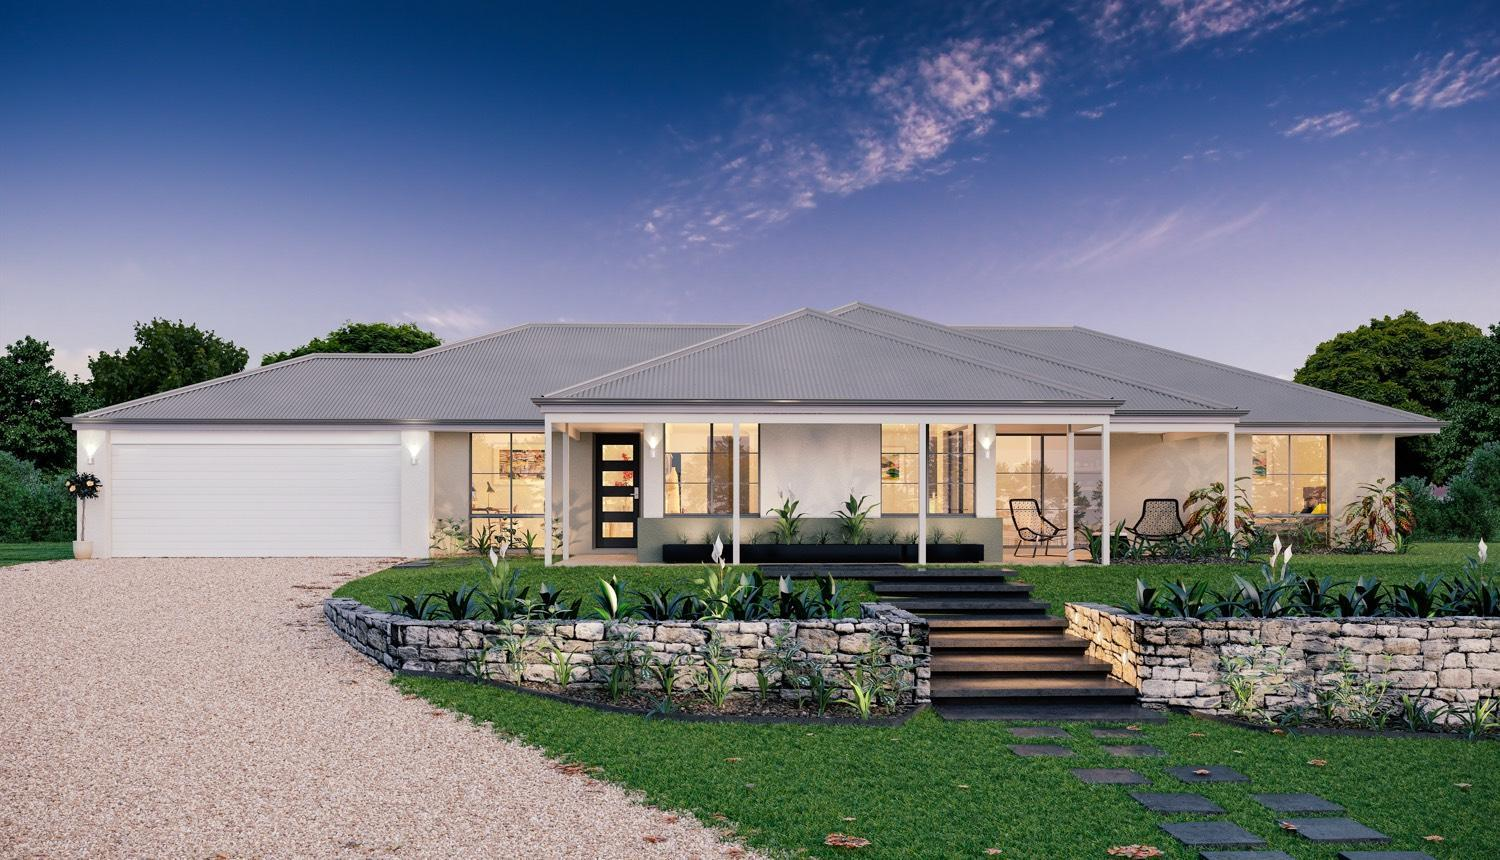 Nice country builders homes designs 7 wa country for Country builder